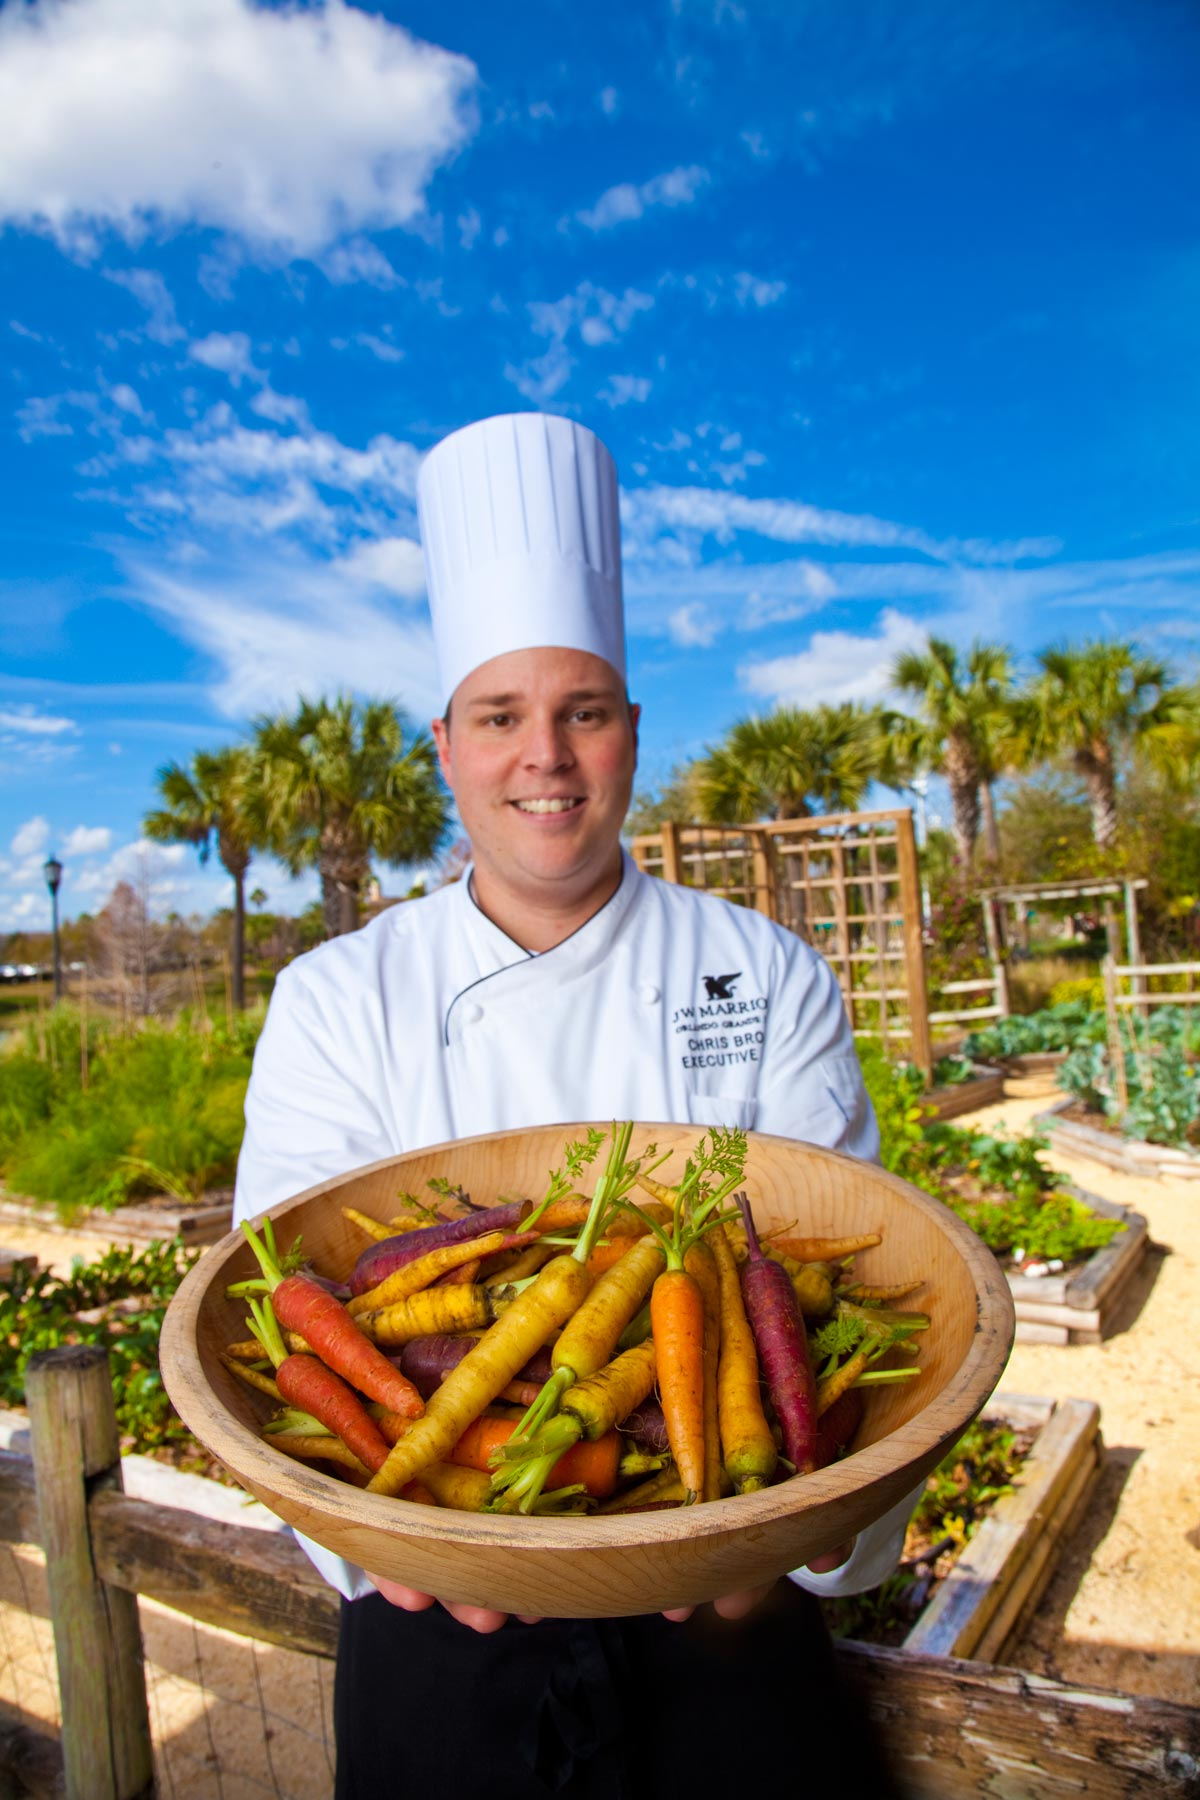 Chef & Restaurant Photography | J W Marriott Chef in Garden